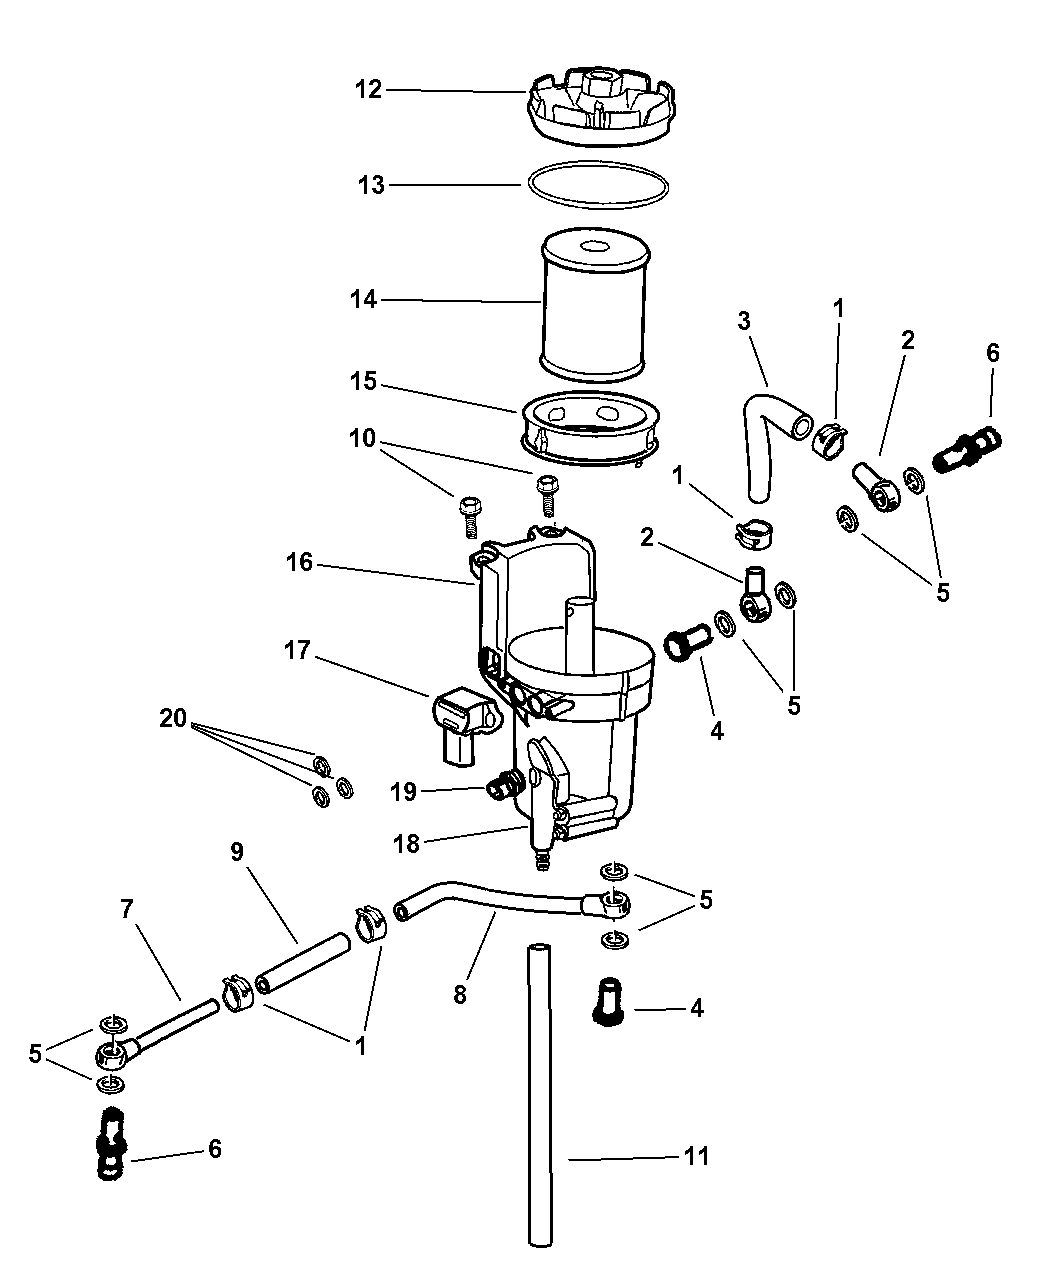 dodge fuel filter diagram - wiring diagram dear-warehouse -  dear-warehouse.pasticceriagele.it  pasticceriagele.it